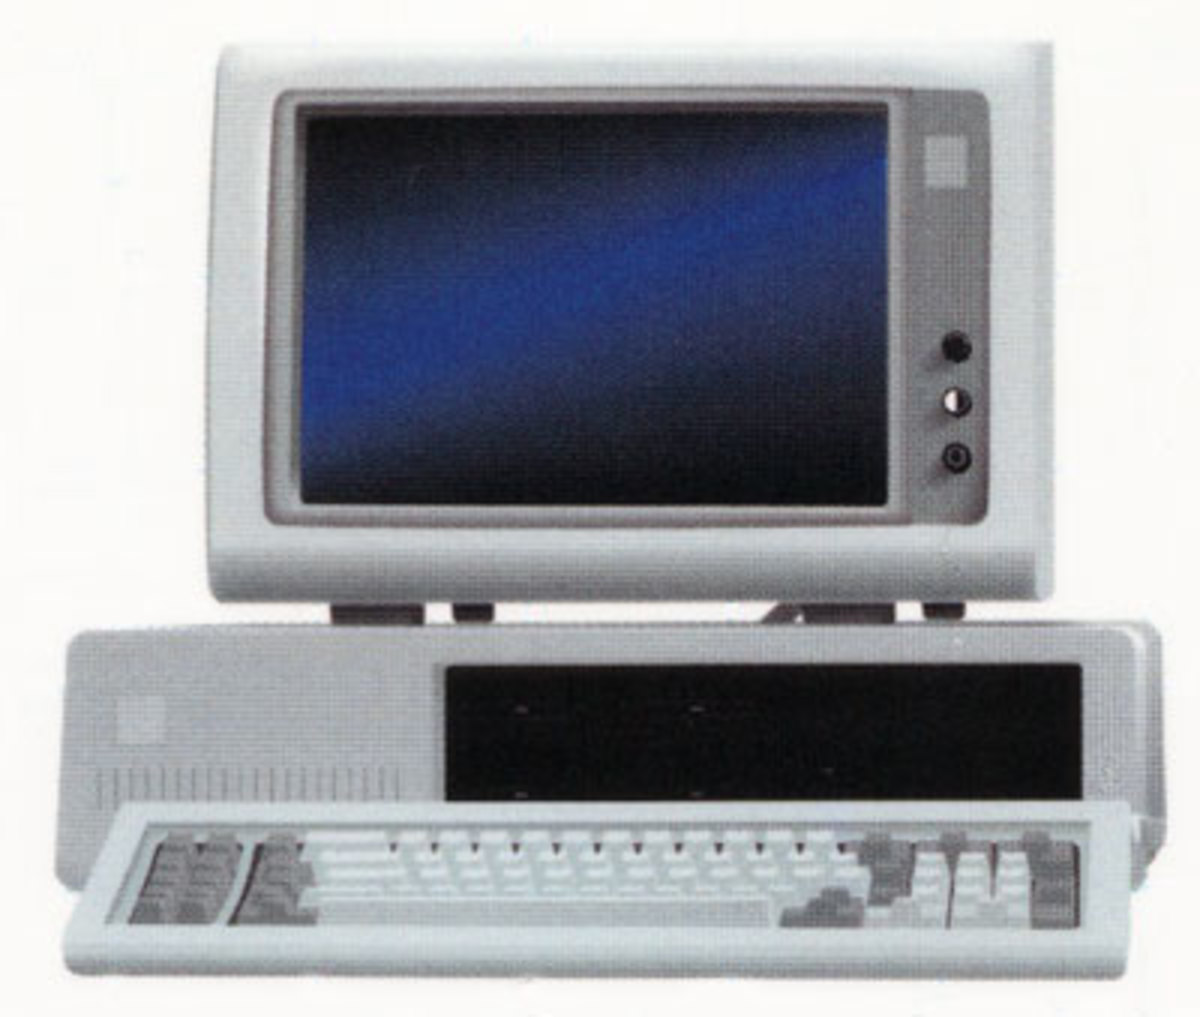 IBM 5150 with Enhanced Keyboard